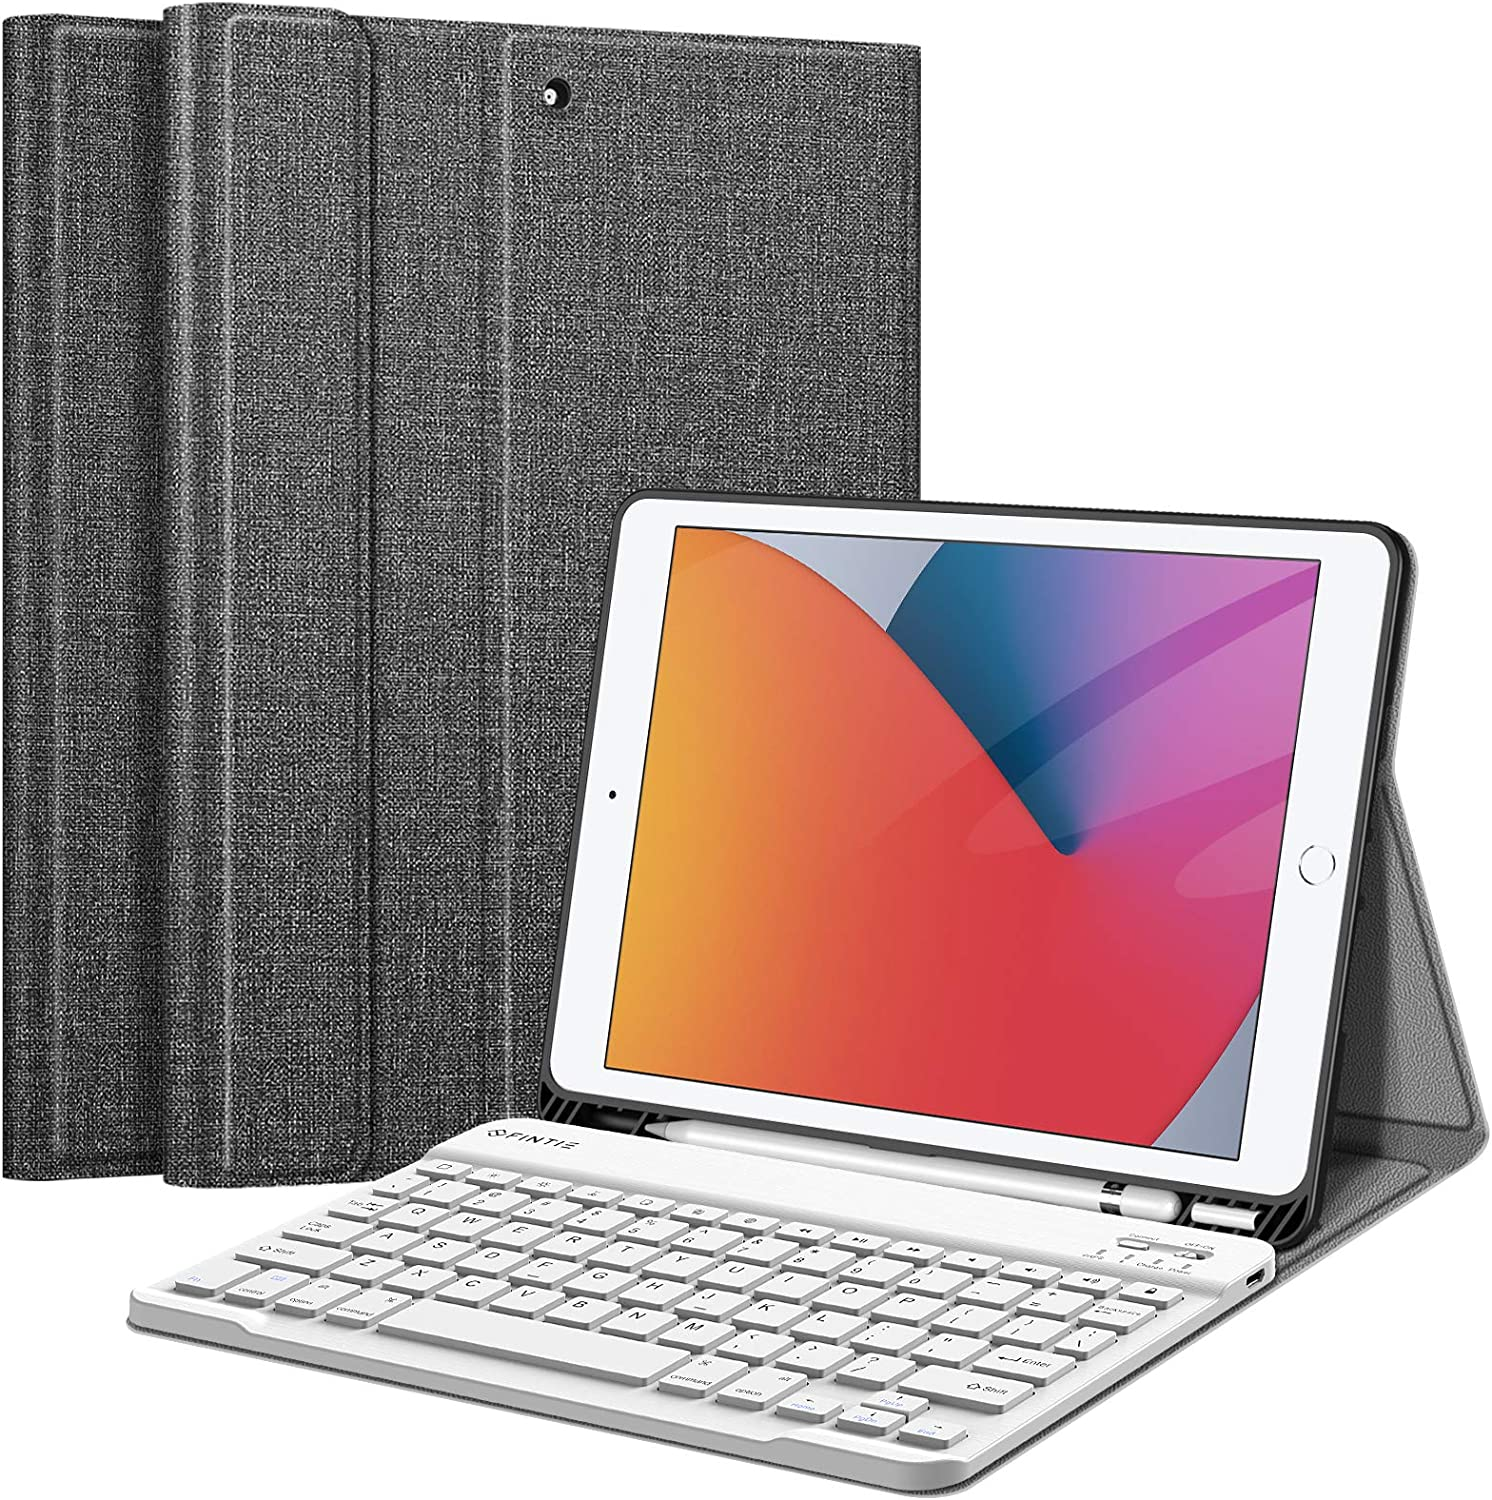 Fintie Keyboard Case for iPad 9th / 8th / 7th Generation (2021/2020/2019) 10.2 Inch, Soft TPU Back Stand Cover with Pencil Holder, Magnetically Detachable Wireless Bluetooth Keyboard, Gray